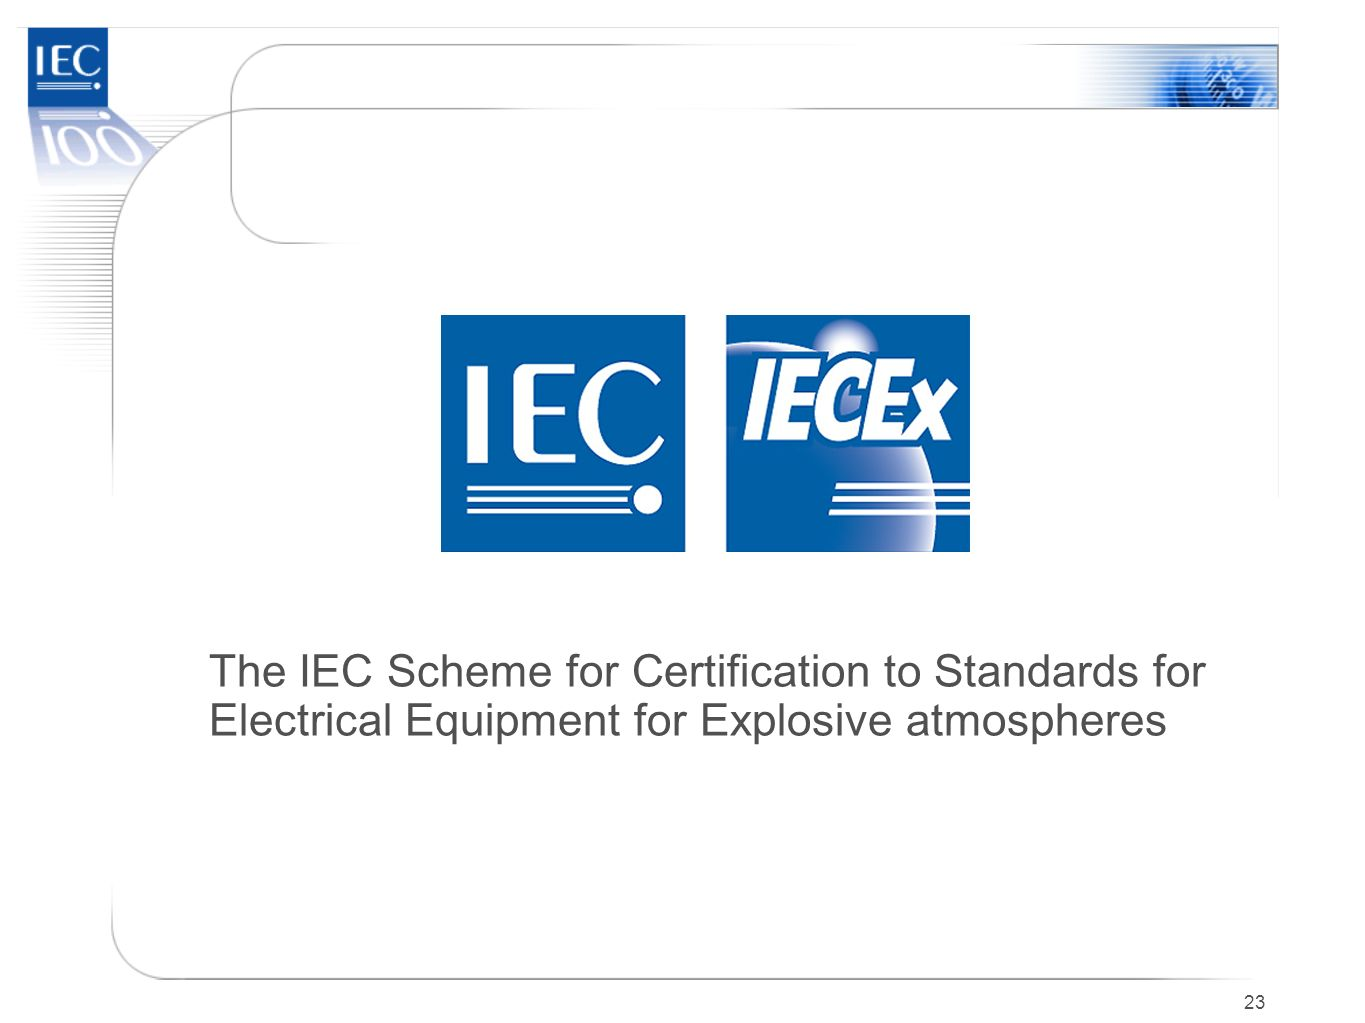 The IEC Scheme for Certification to Standards for Electrical Equipment for Explosive atmospheres